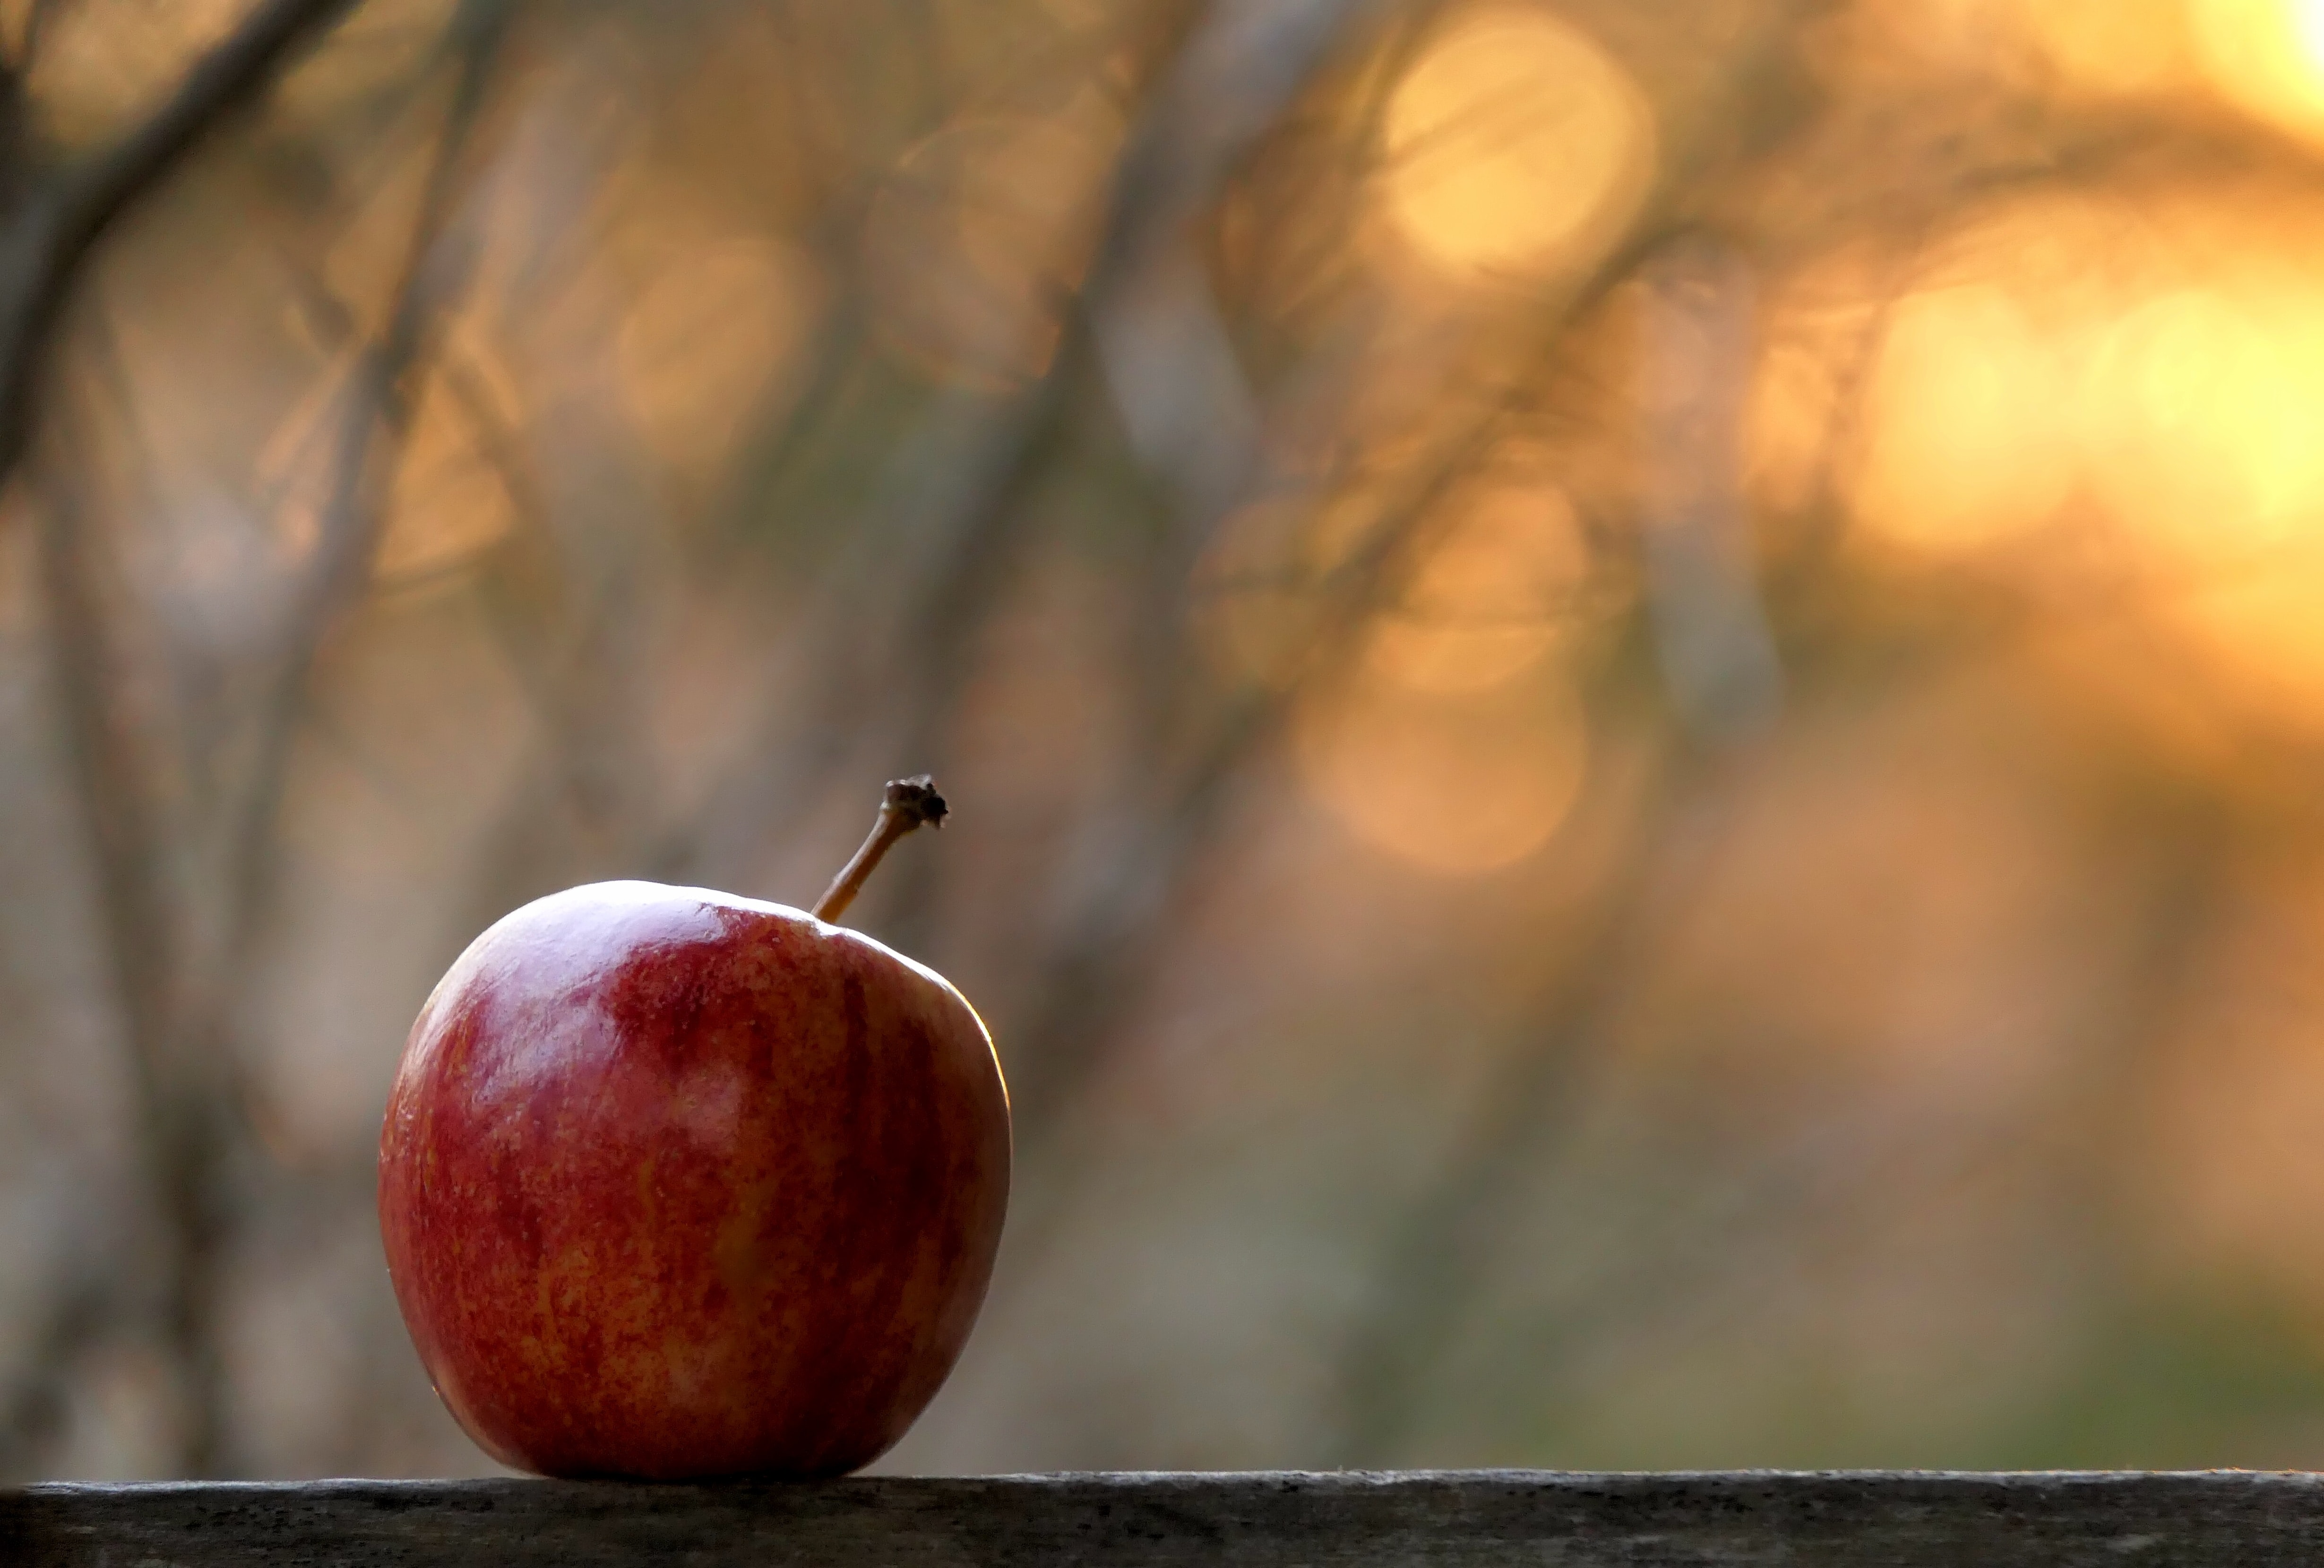 107672 Screensavers and Wallpapers Apple for phone. Download Food, Apple, Fruit, Focus pictures for free